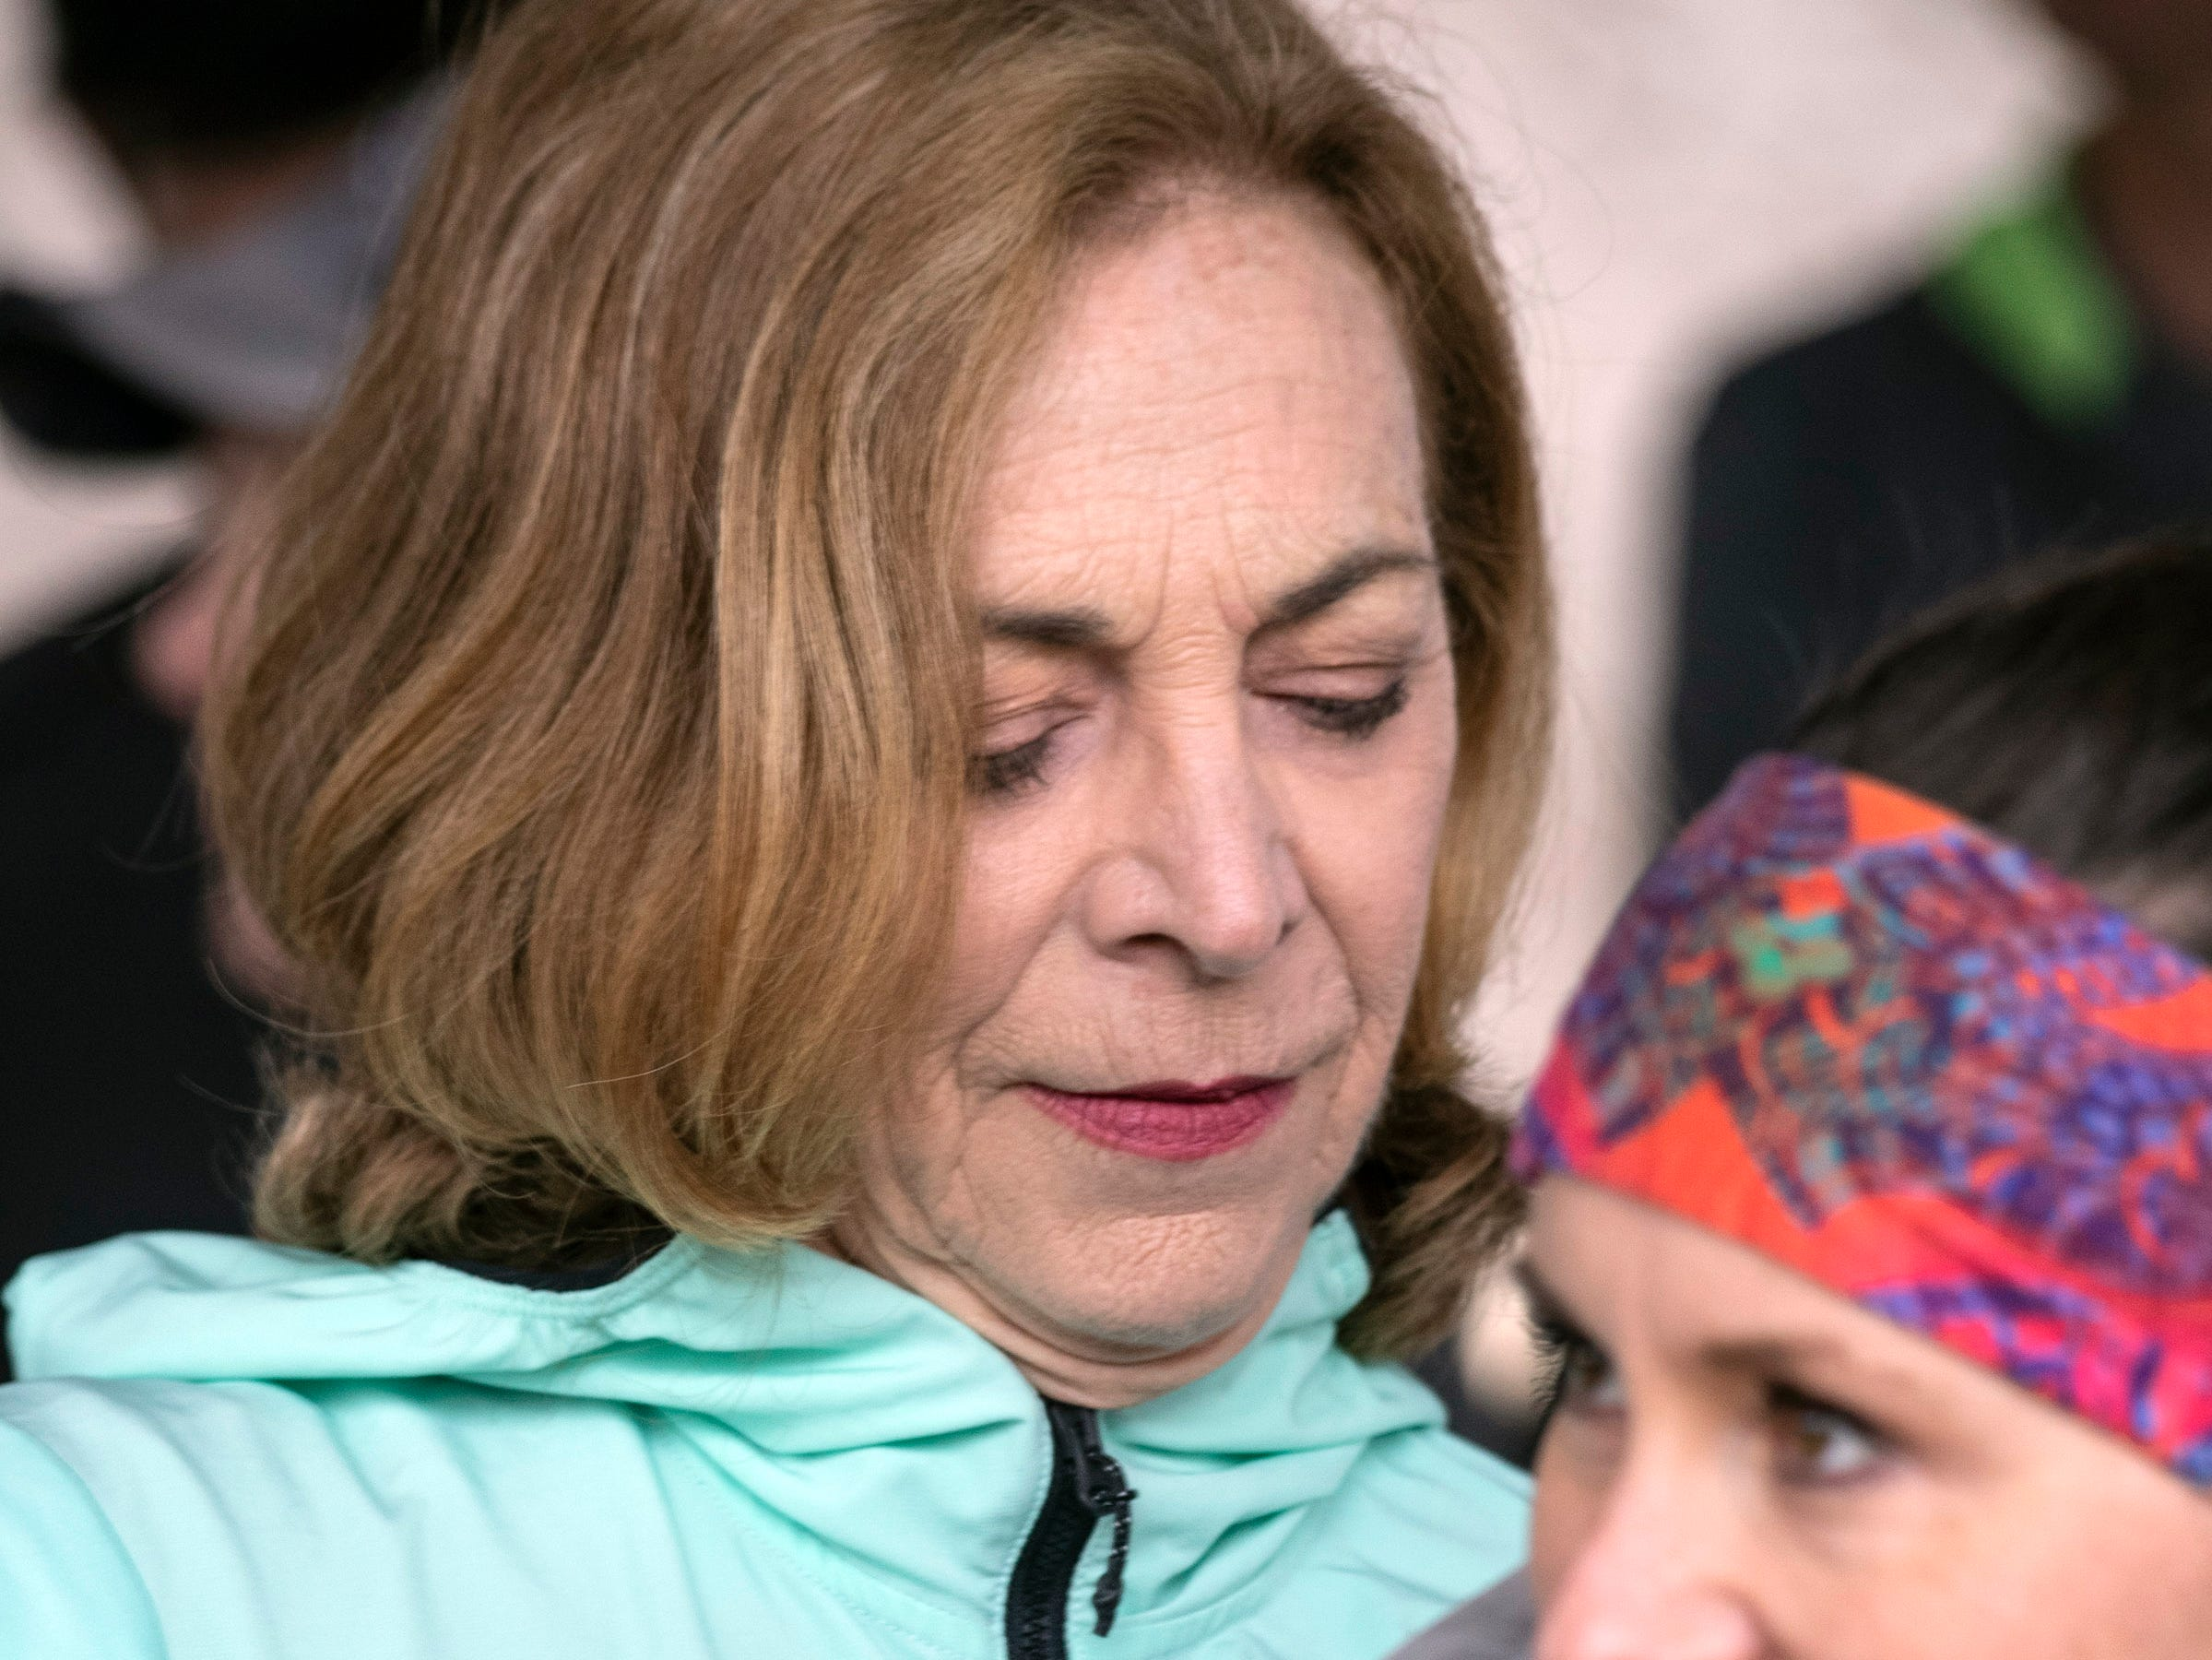 Harmony Ray got an autograph from, and photo with, Boston Marathon legend Kathrine Switzer during a meet and greet and run in Cherokee Park on Thursday.